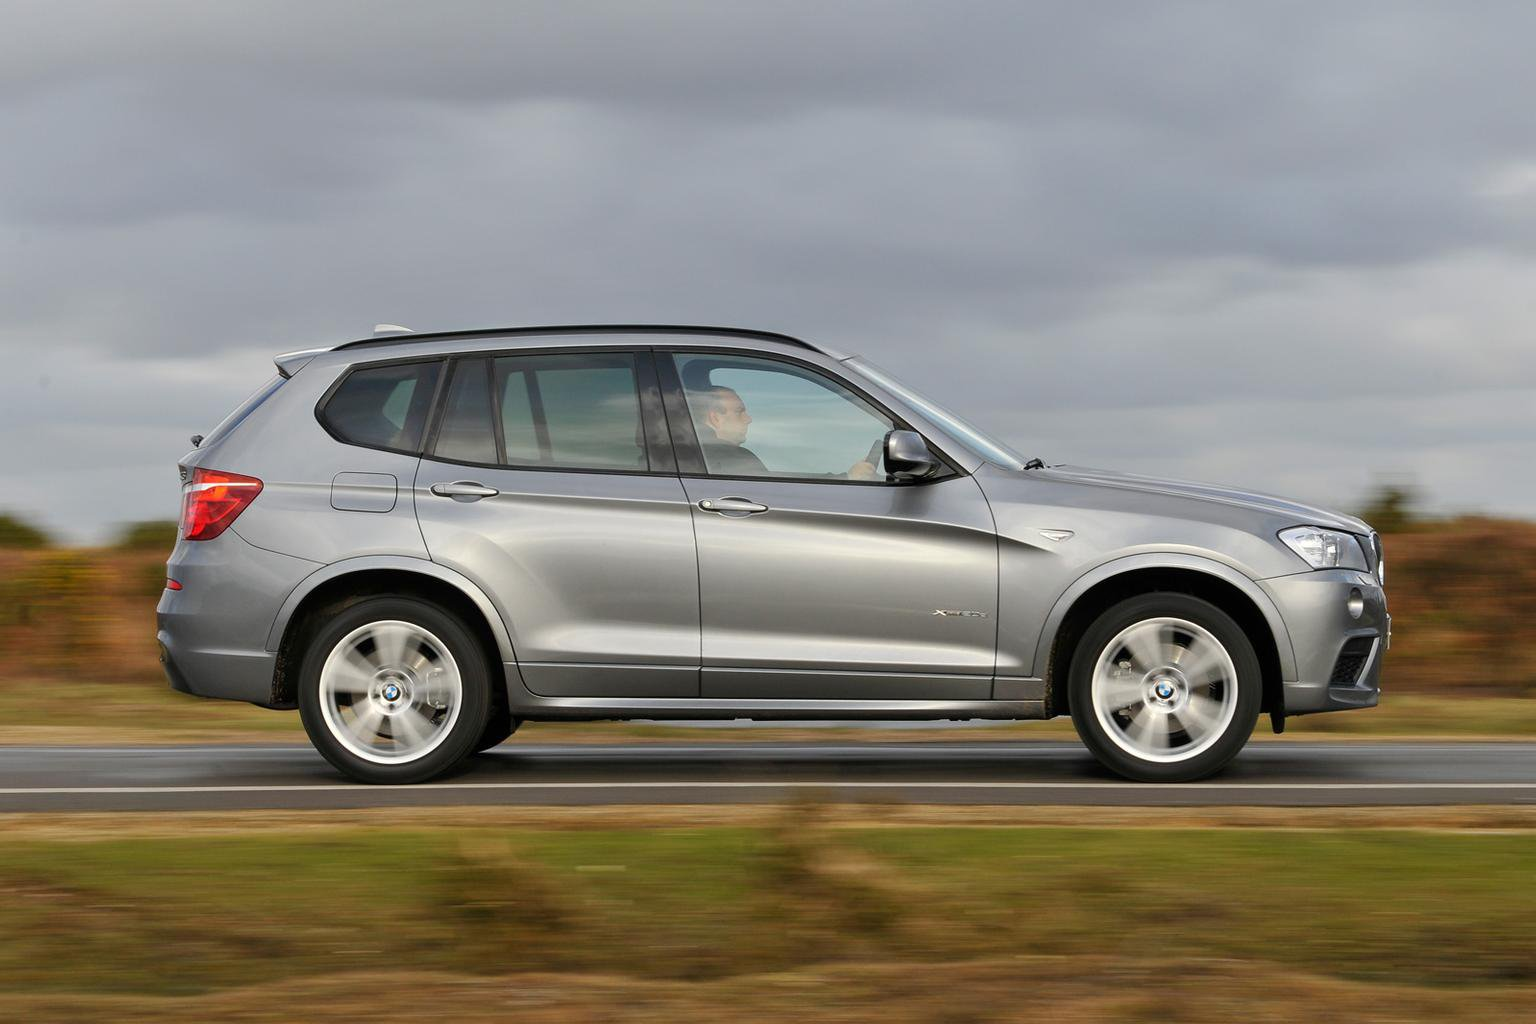 The rivals the 2015 Land Rover Discovery Sport has to beat